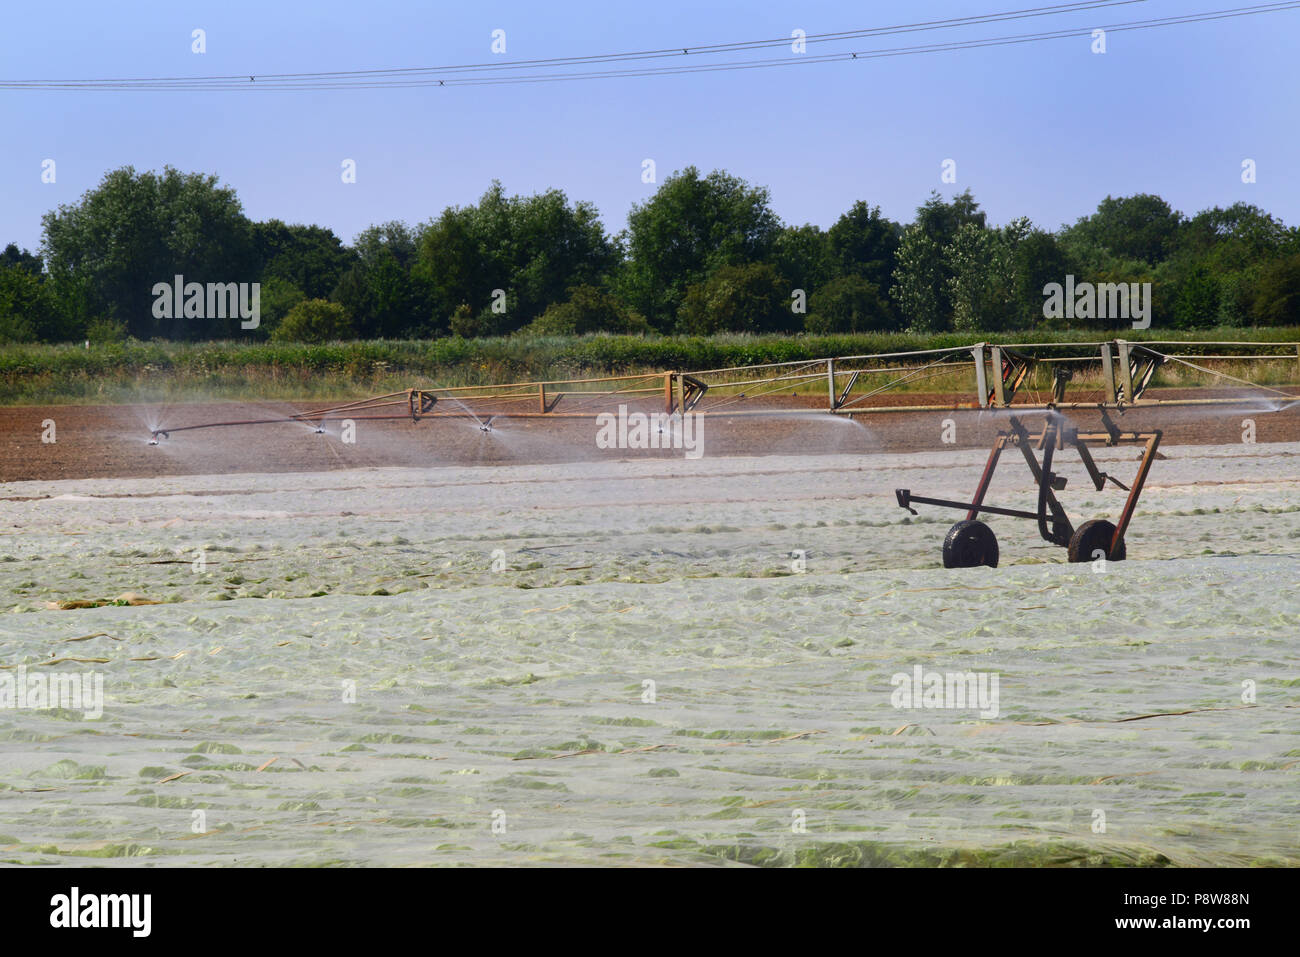 centre pivot boom crop irrigation system in use during drought in field with plastic mulches to retain moisture and suppress weeds york united kingdom - Stock Image